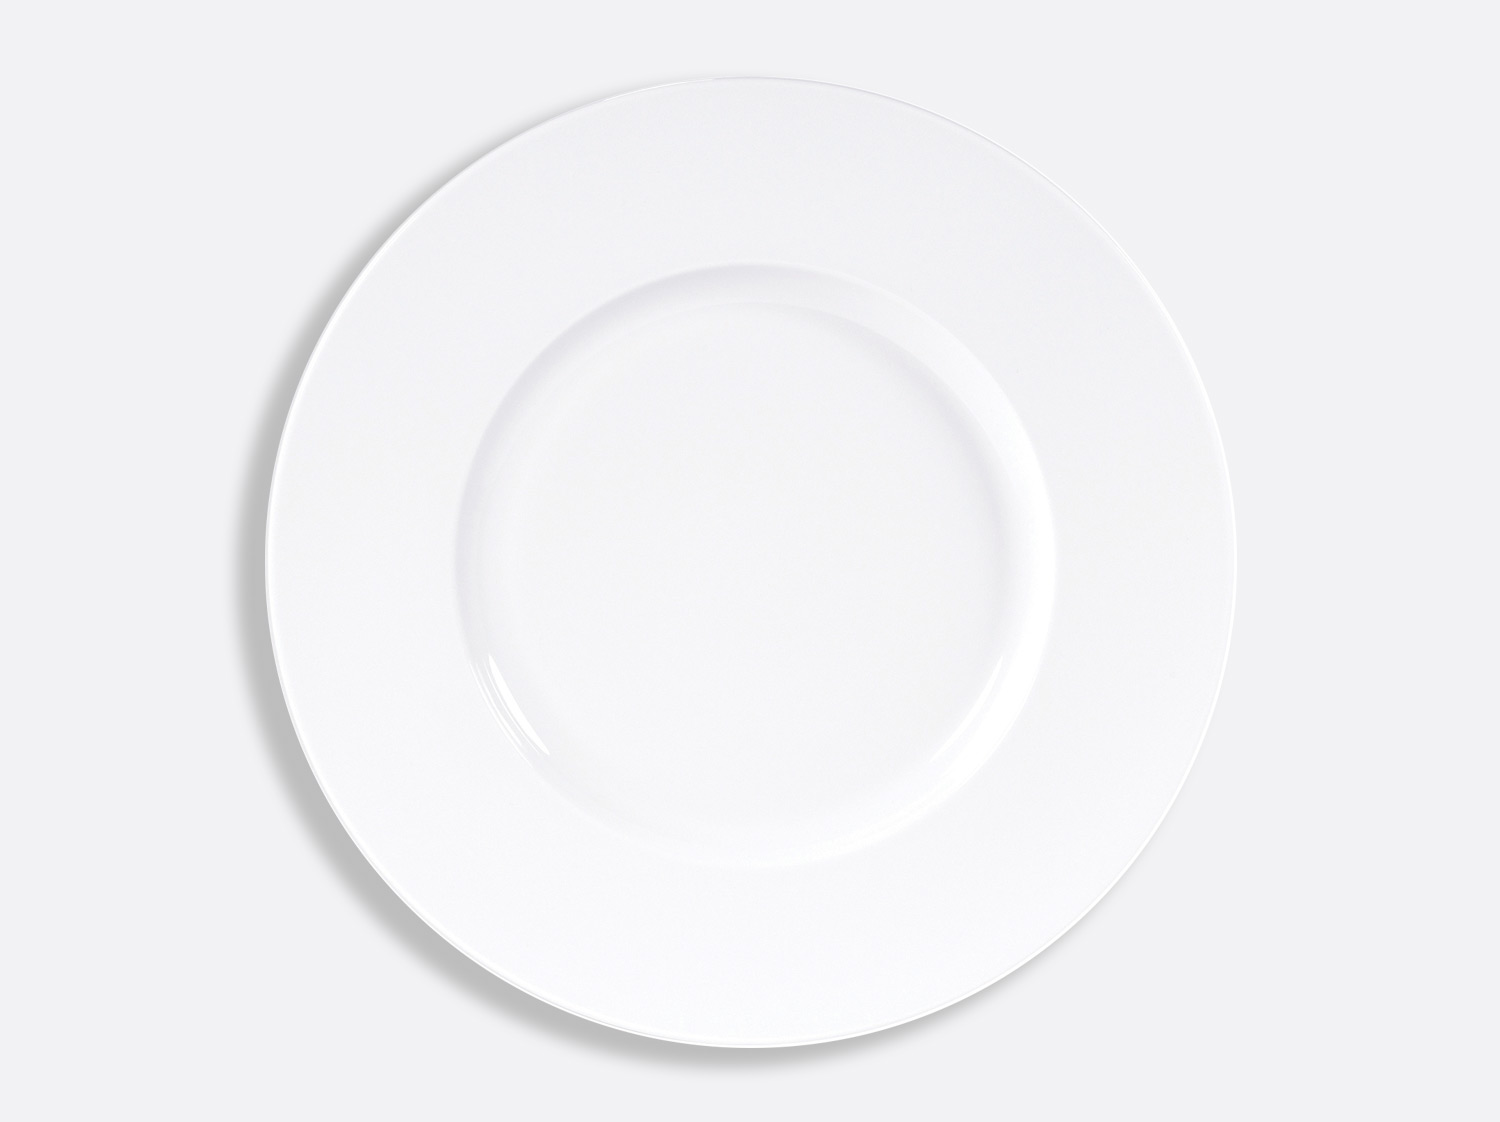 Assiette plate aile large D. 32 cm en porcelaine de la collection PHOEBE BLANC Bernardaud